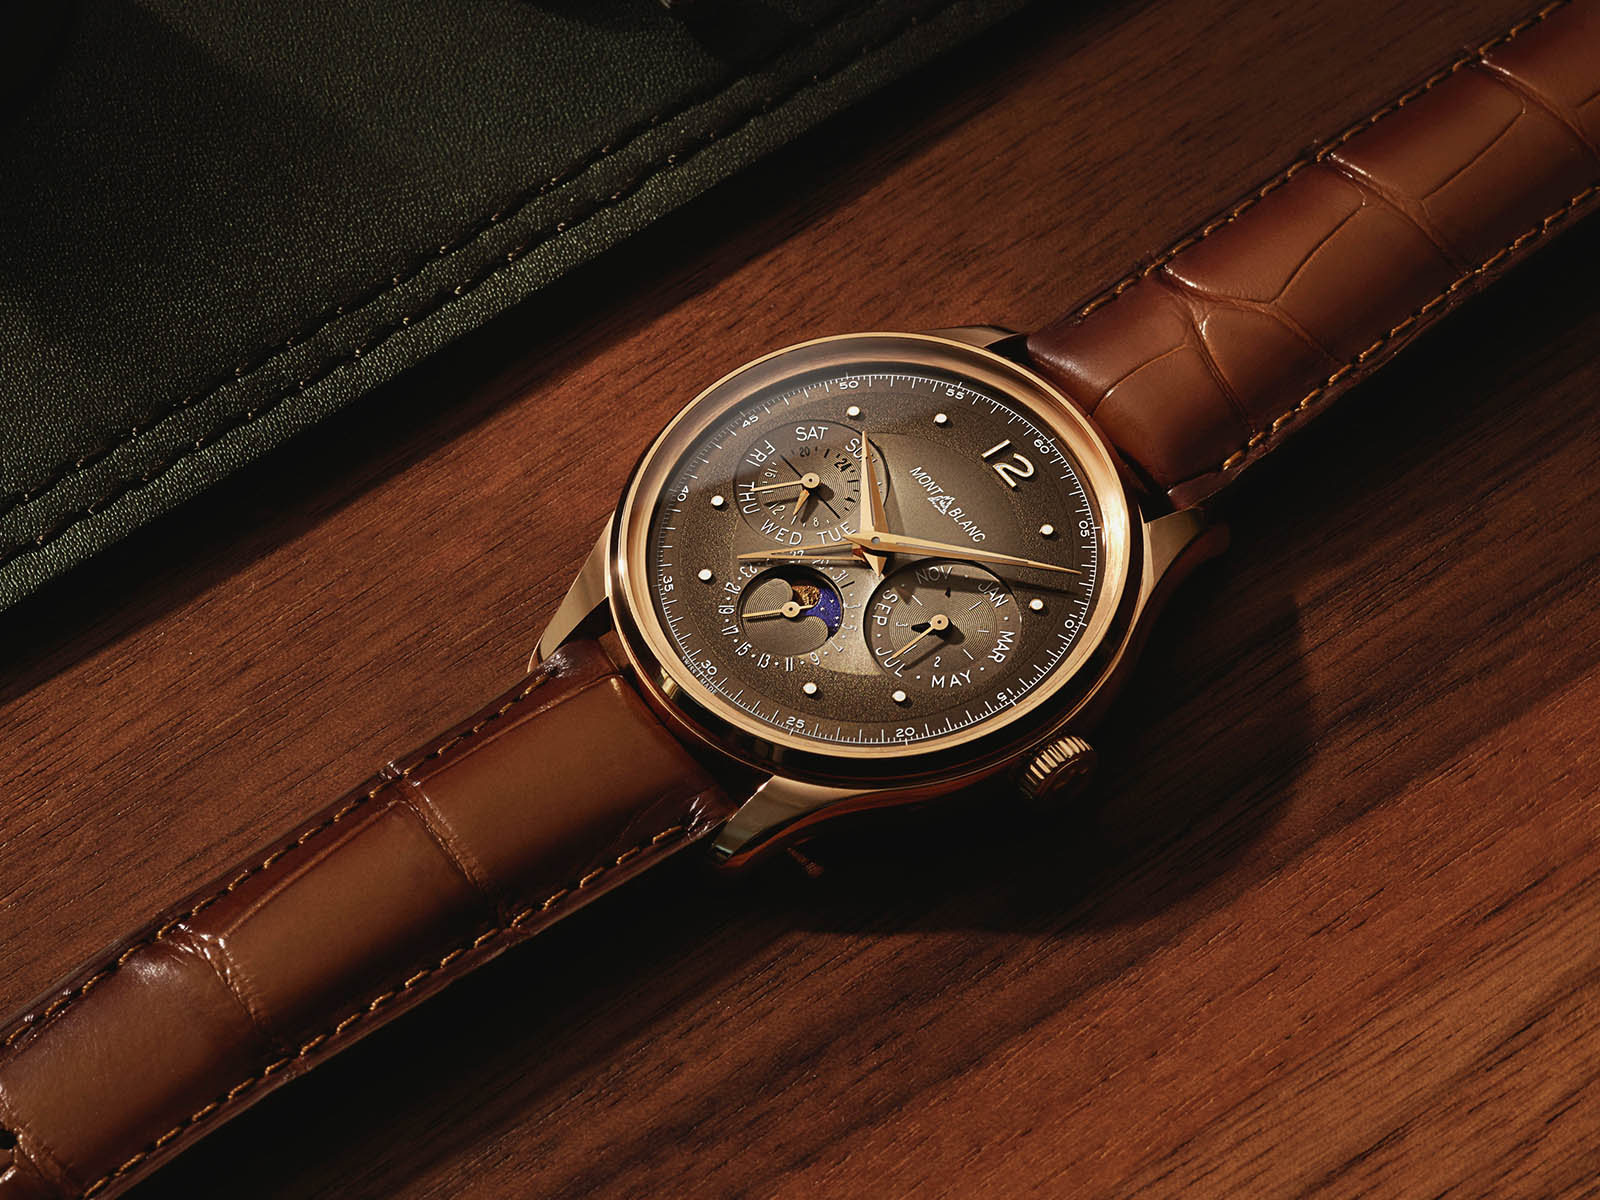 128669-montblanc-heritage-manufacture-perpetual-calendar-limited-edition-100-2.jpg